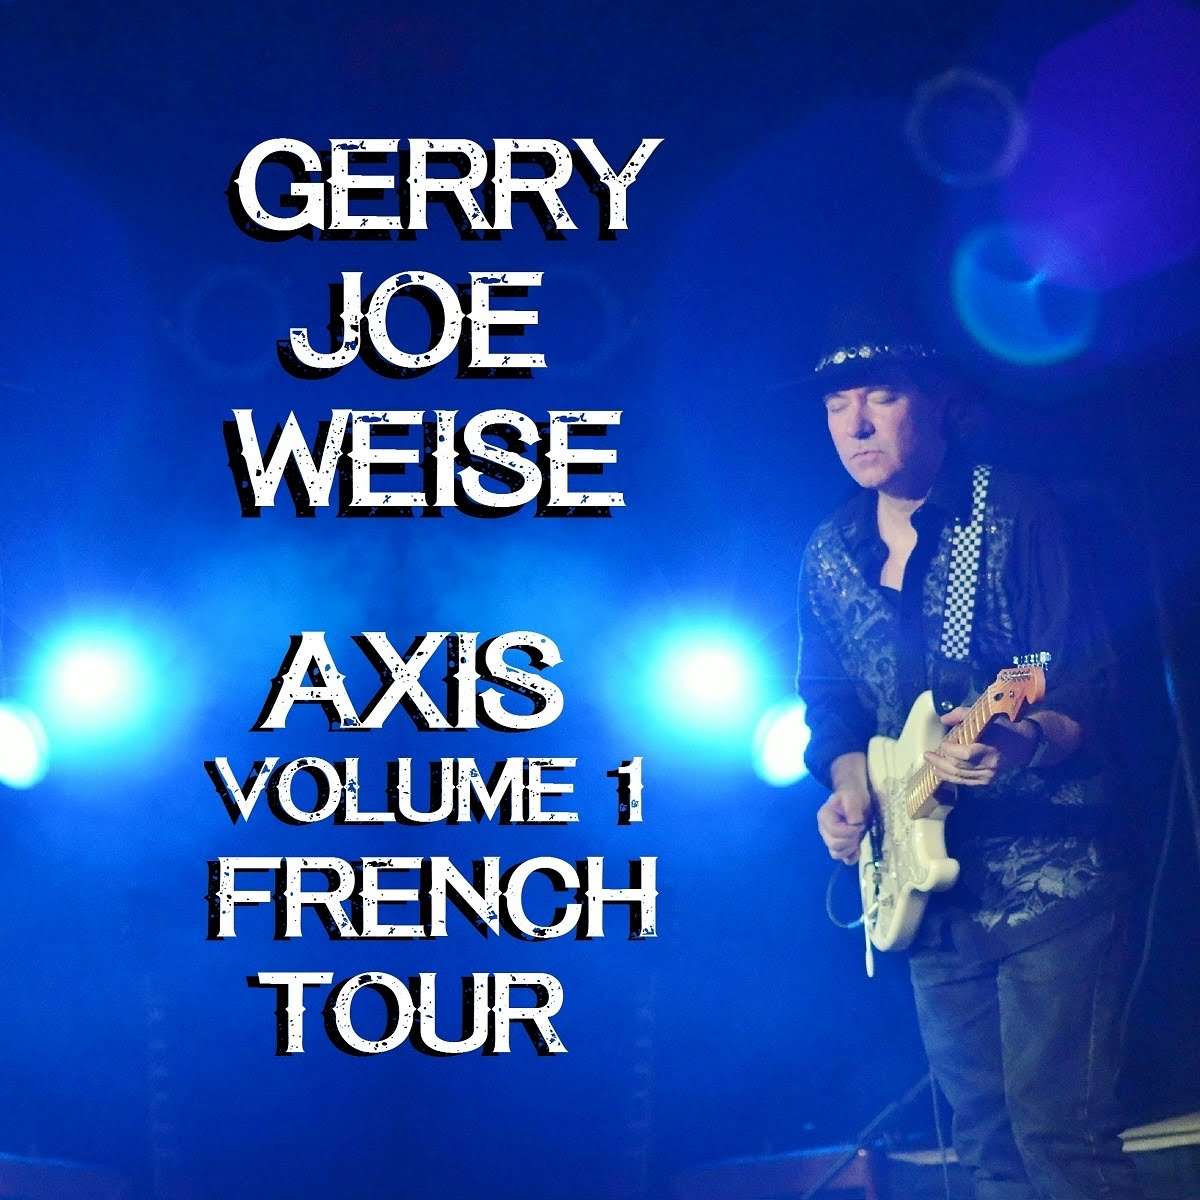 Axis Volume 1 French Tour, 2019 album